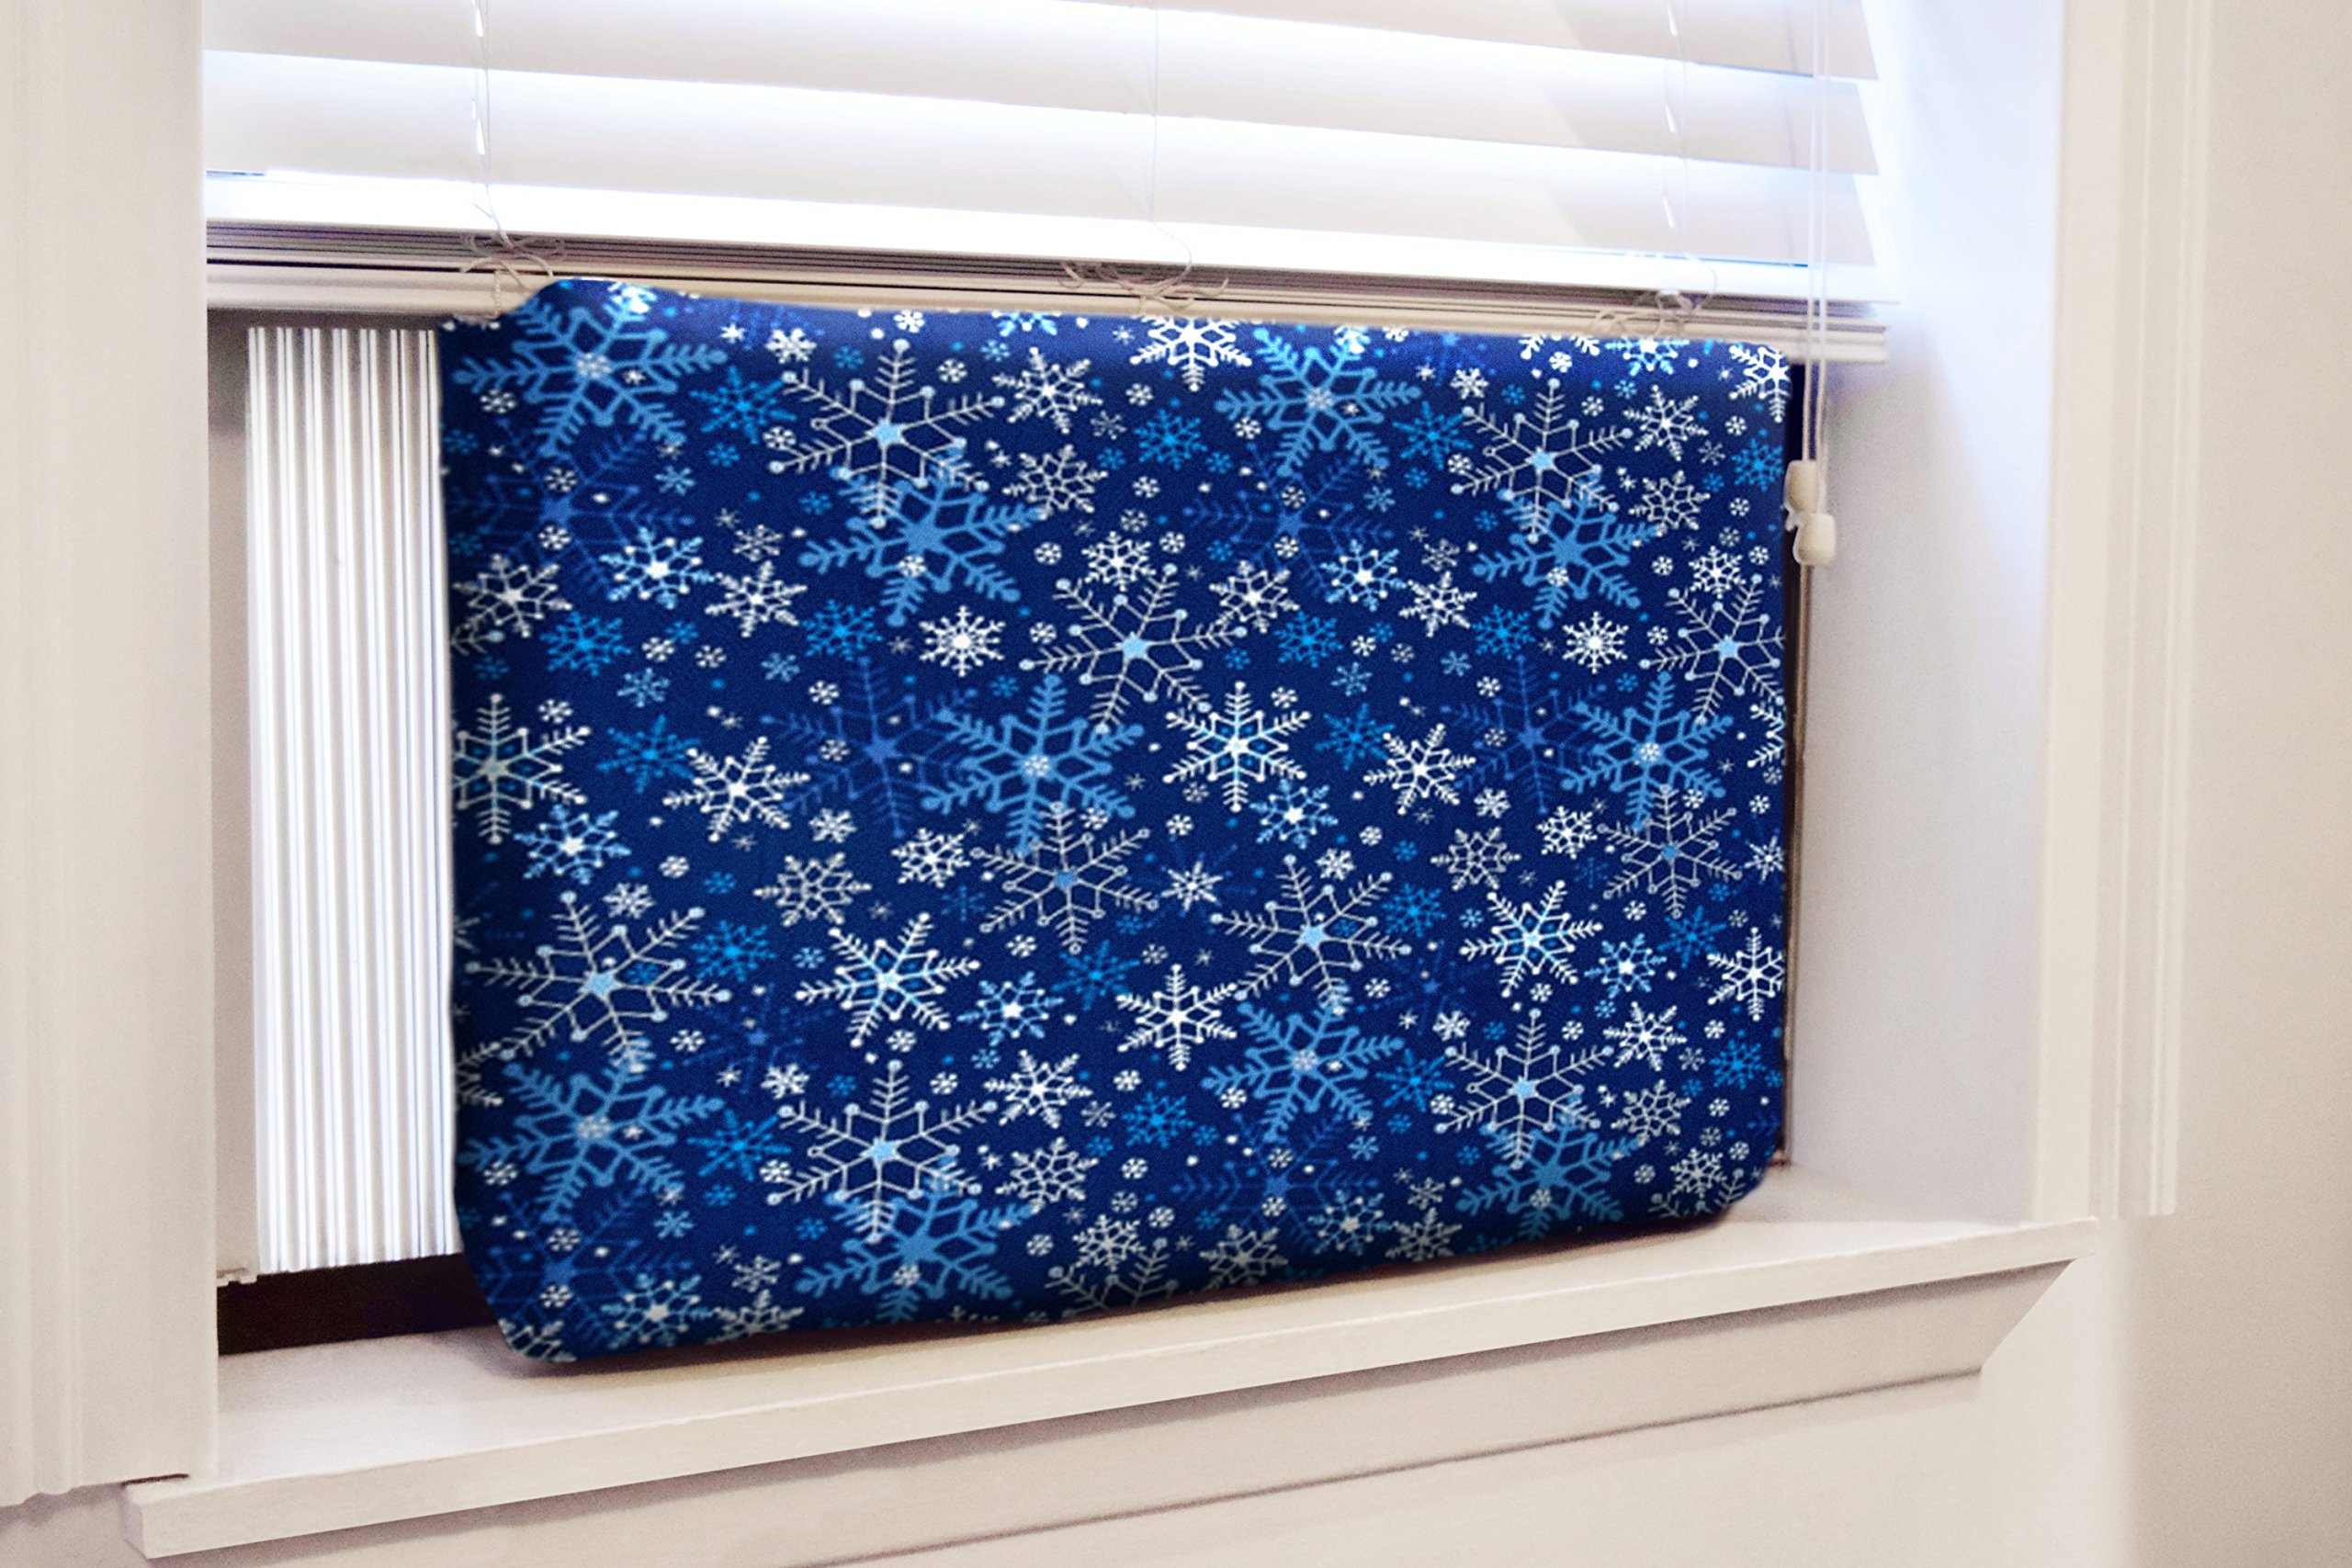 Gerrard Larriett Aromatherapy Pet Care Premium Quilted Indoor Air Conditioner Covers for Window Units 24'' W x 15'' H - Snowflakes